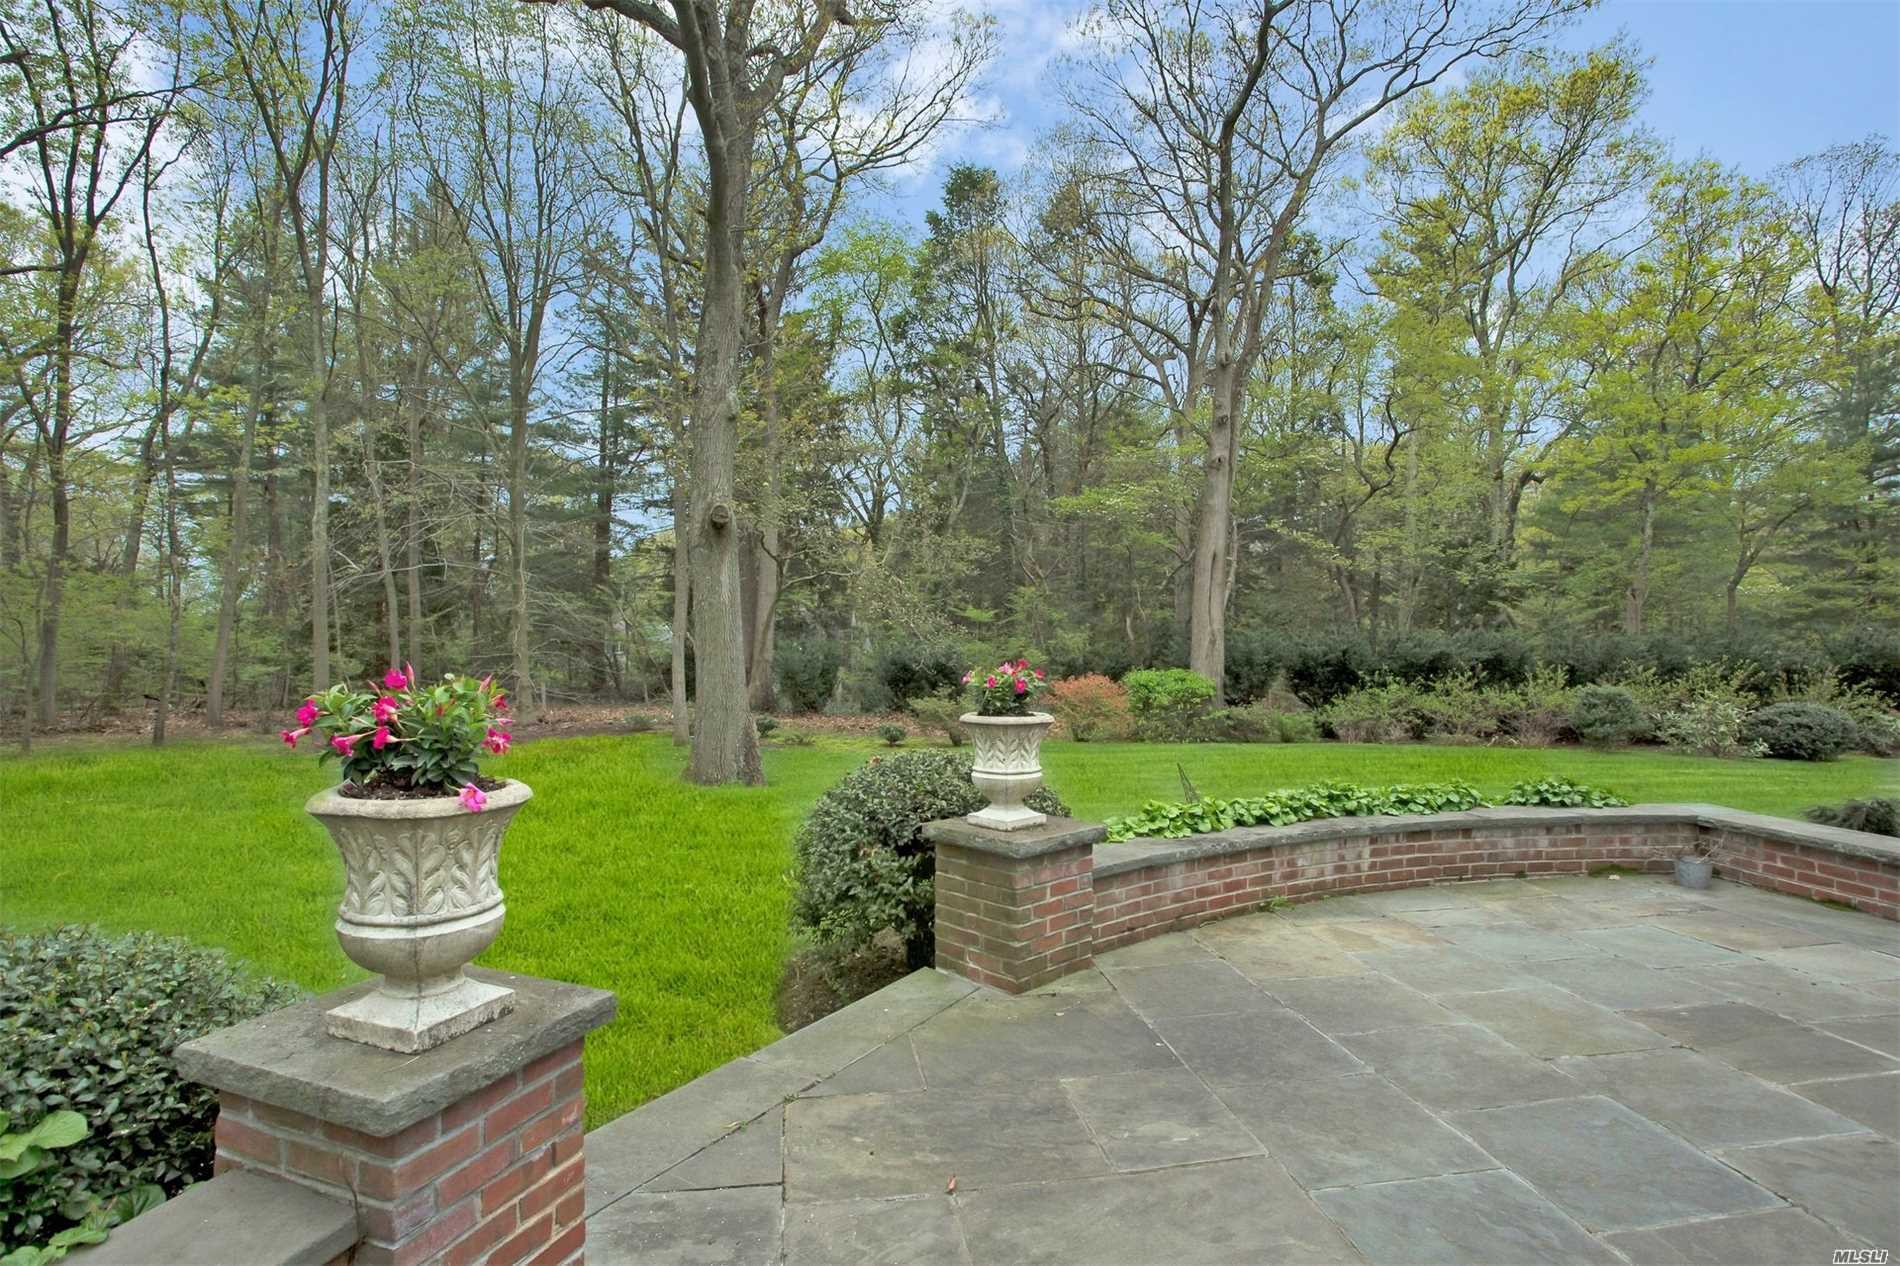 Updated 6 bedroom home situated on 4 park like acres down a private road abutting a private country club. Open entertaining flow with large living/dining room and EIK. 3 bedrooms on the first floor. Large Master suite and 2 additional bedrooms on 2nd floor along with laundry. Finished basement. Perfect for today's lifestyle